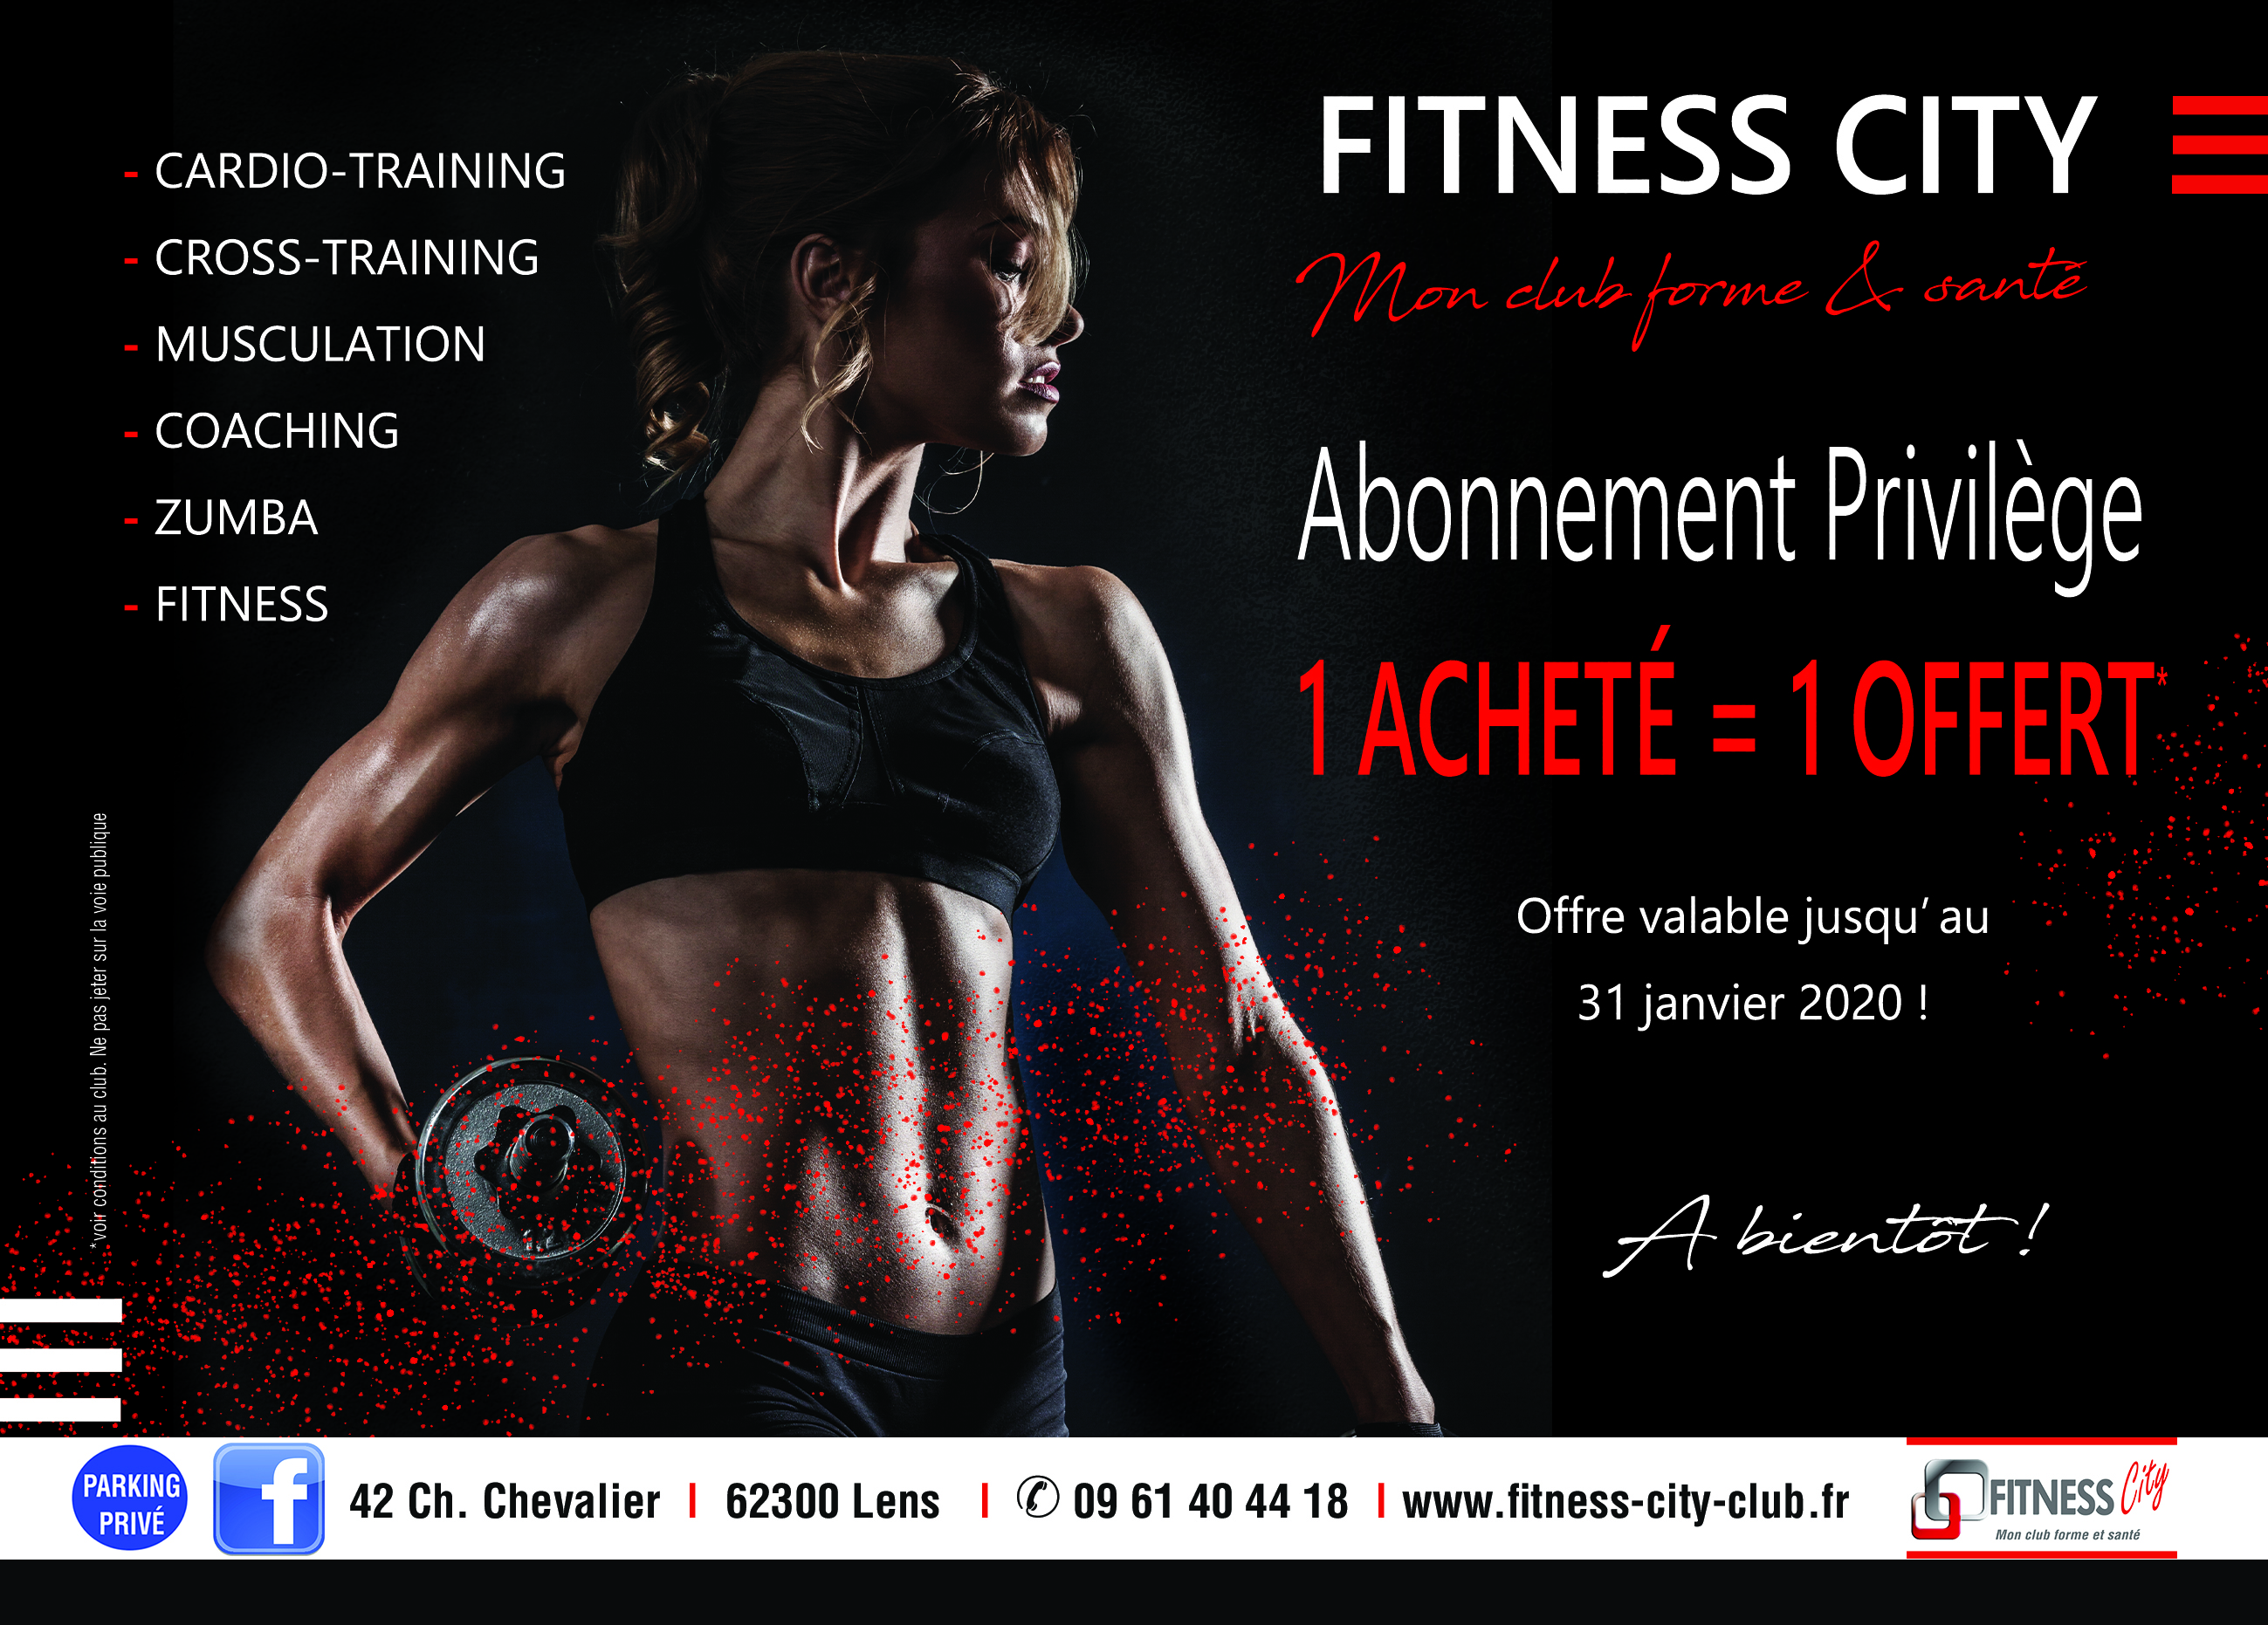 CITY FITNESS dec 19 A5 recto